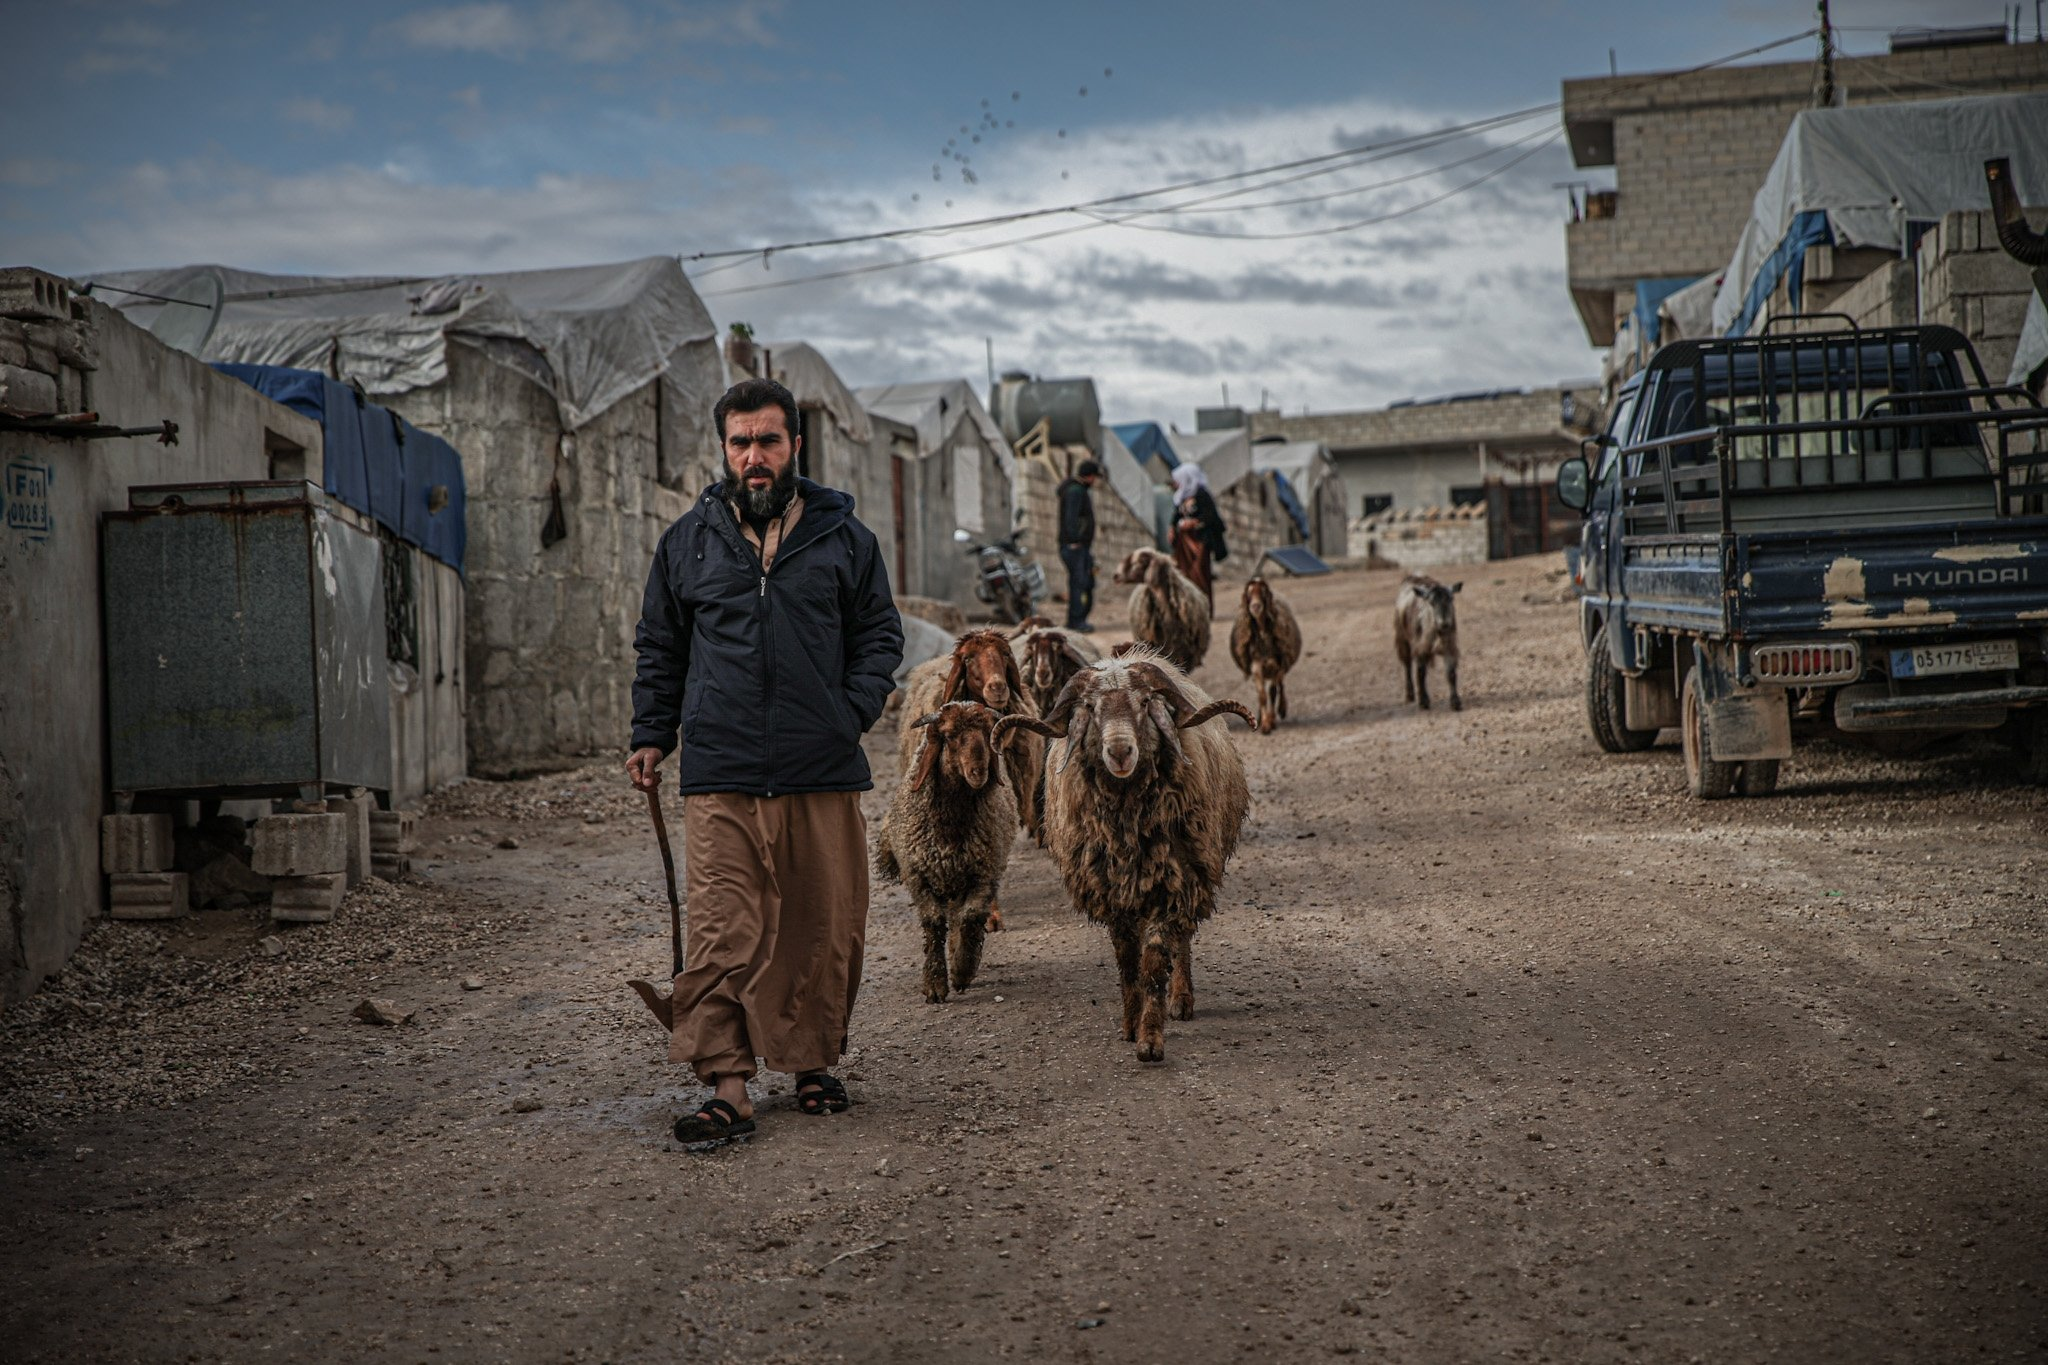 A refugee man is walking in a camp in northwestern Syria's Idlib with his goats, Idlib, Syria, April 11, 2021.